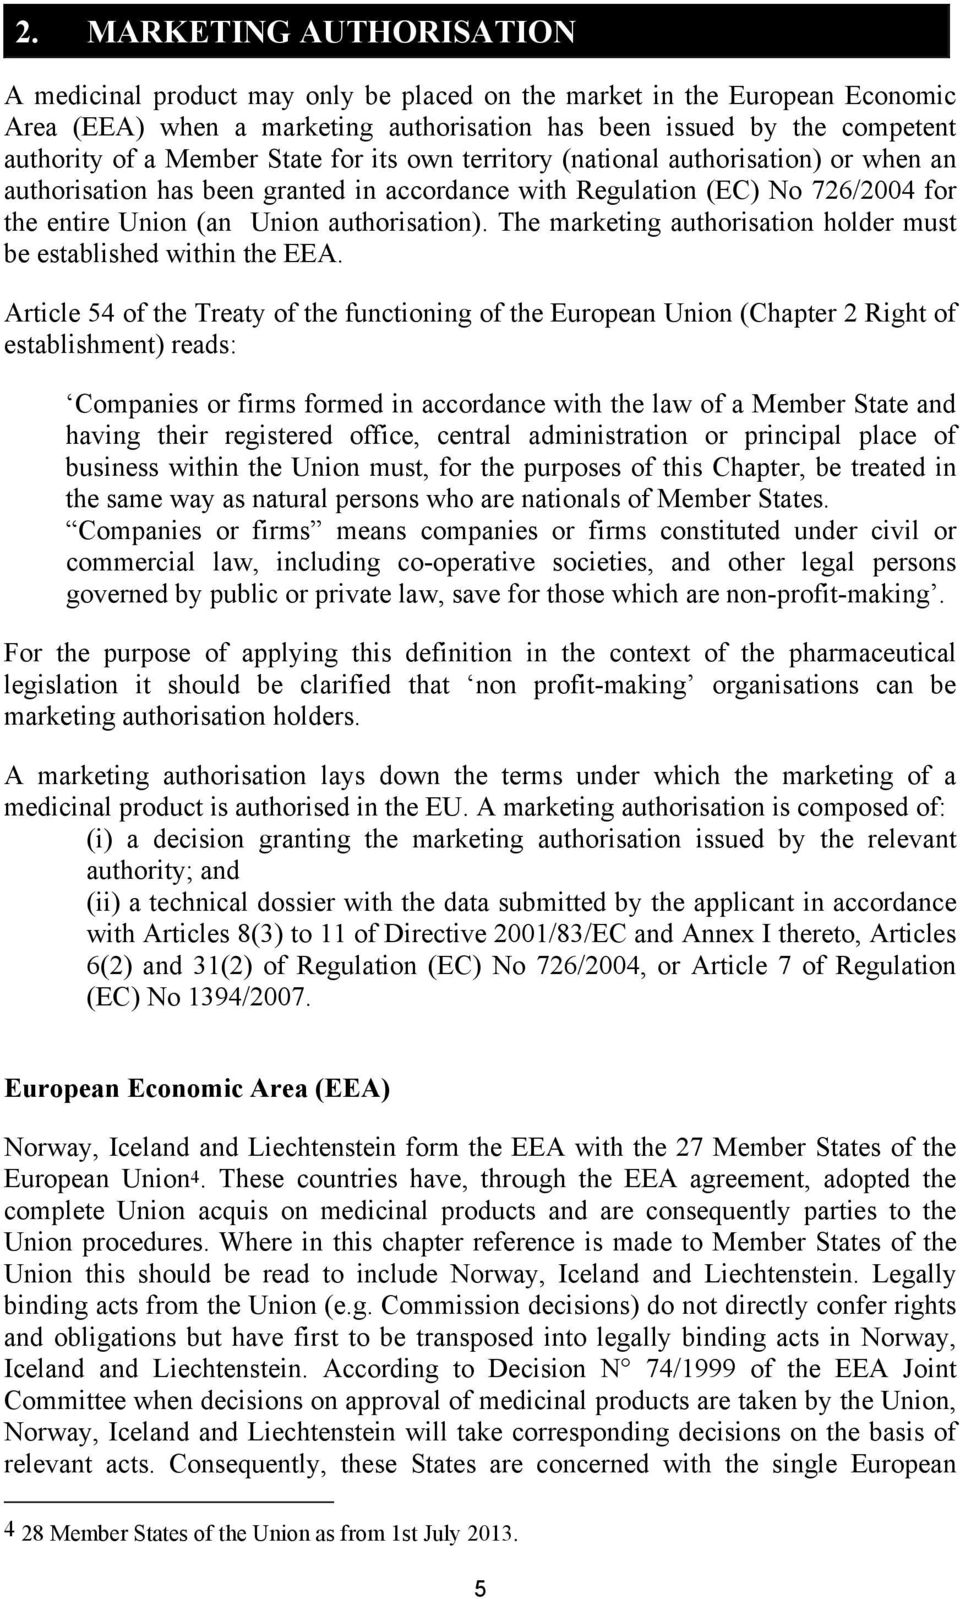 The marketing authorisation holder must be established within the EEA.